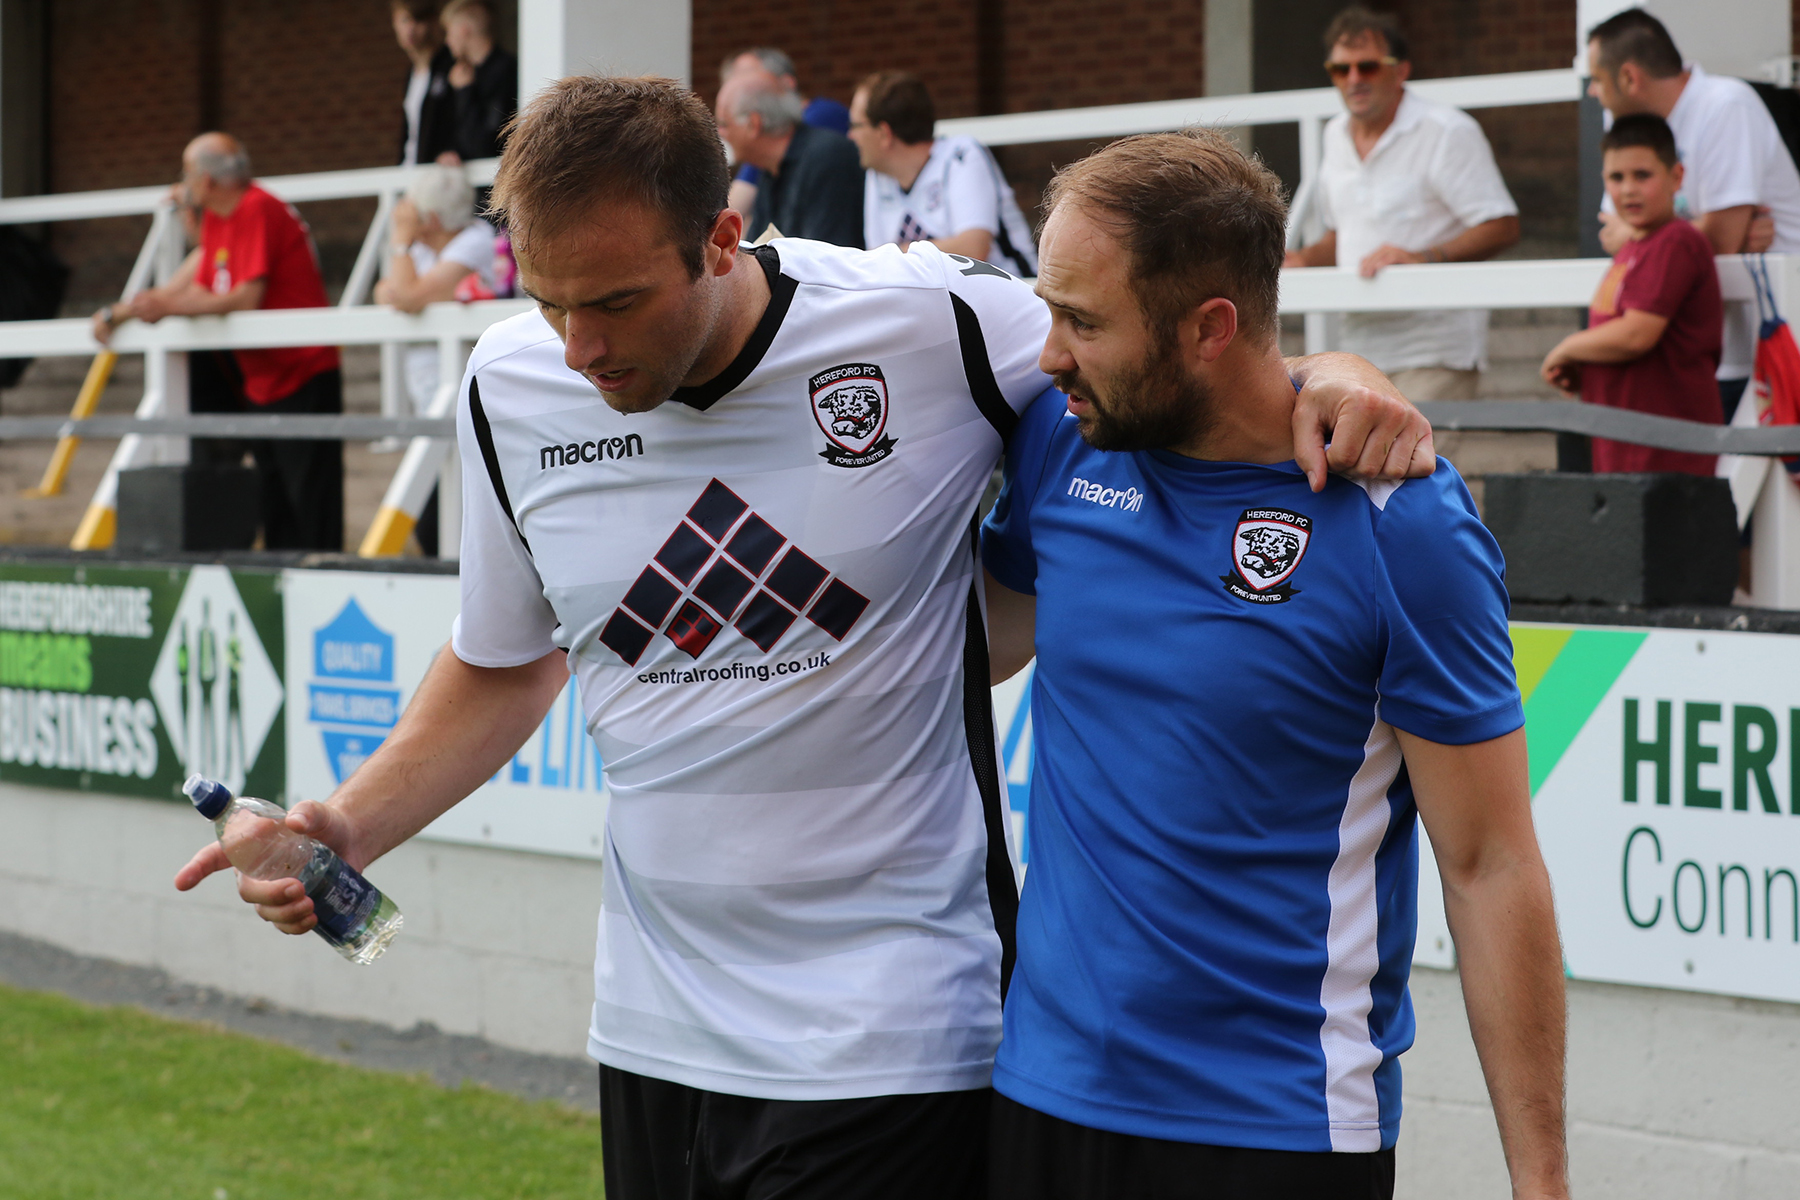 Mike Symons fractured his tibia in a pre-season friendly against Newport County. Picture: Steve Niblett/ Hereford FC